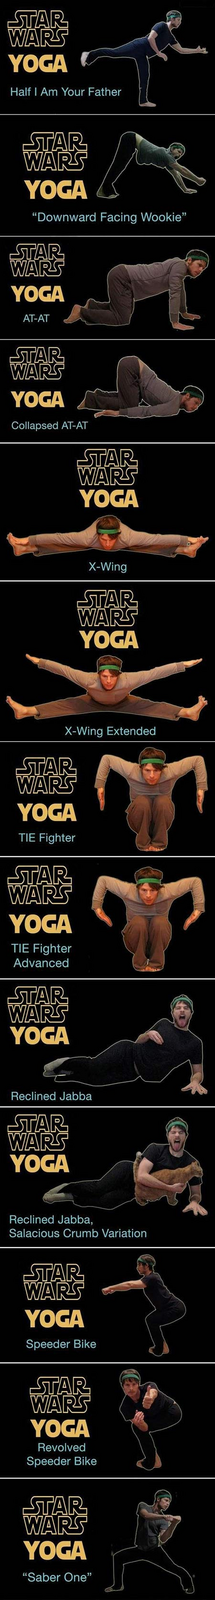 Star Wars Yoga Moves